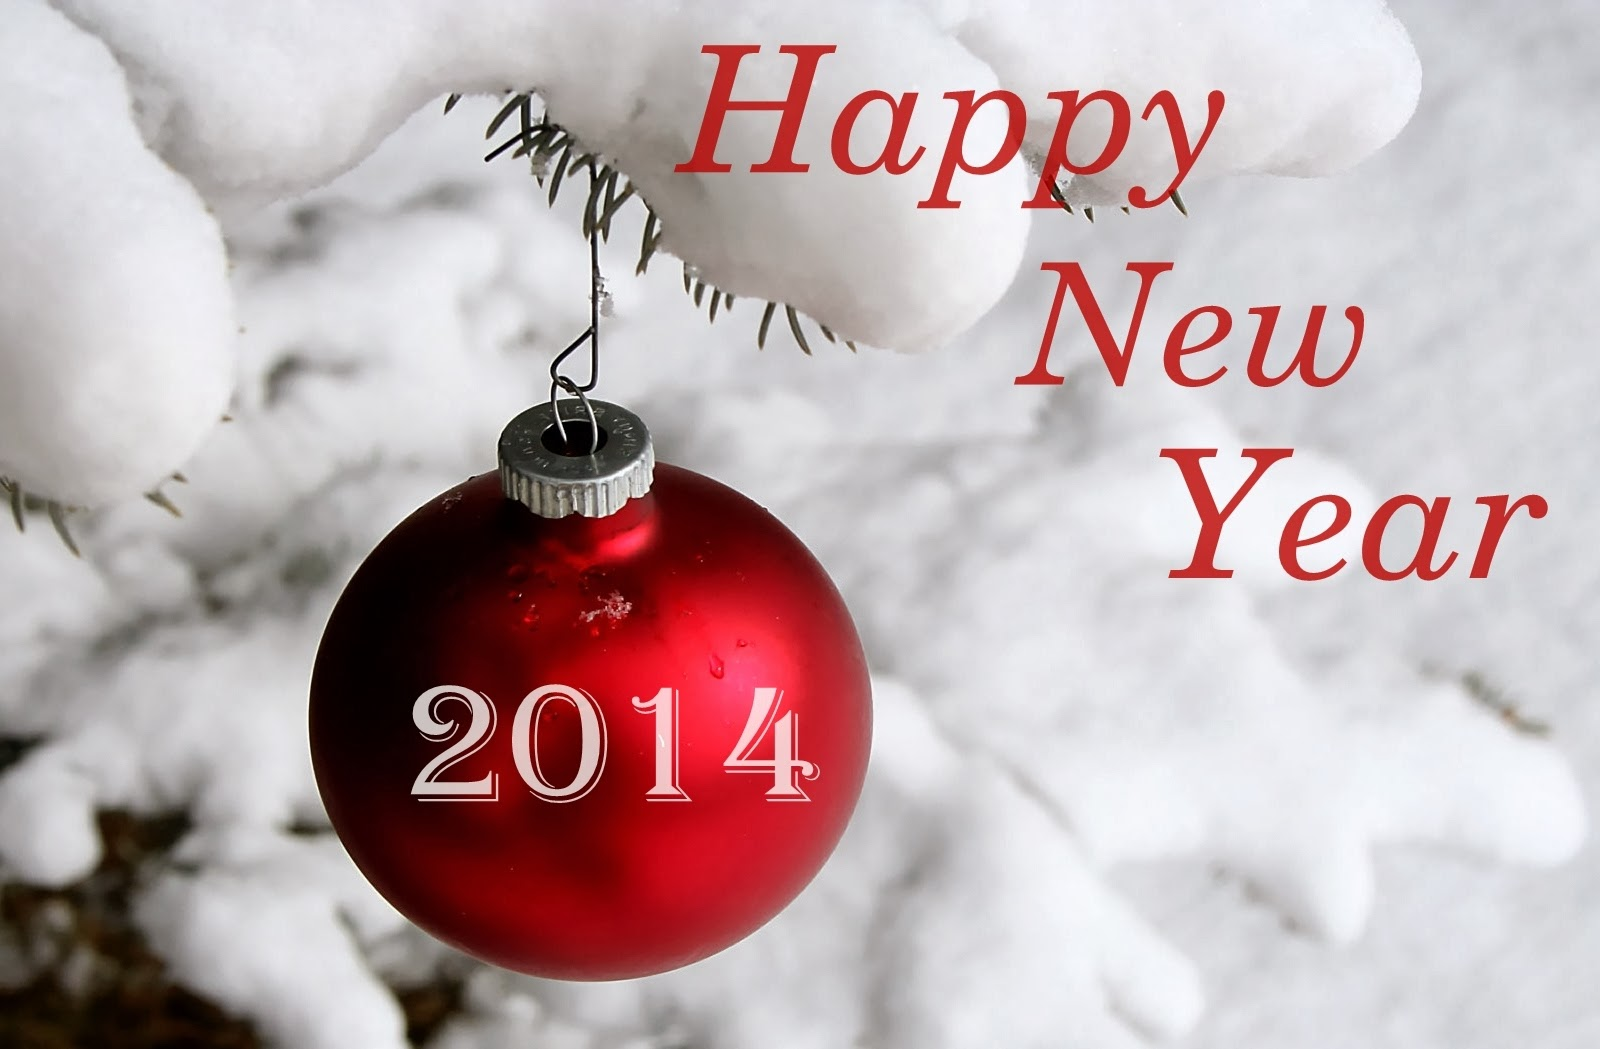 Happy New Year 2014 Wallpapers